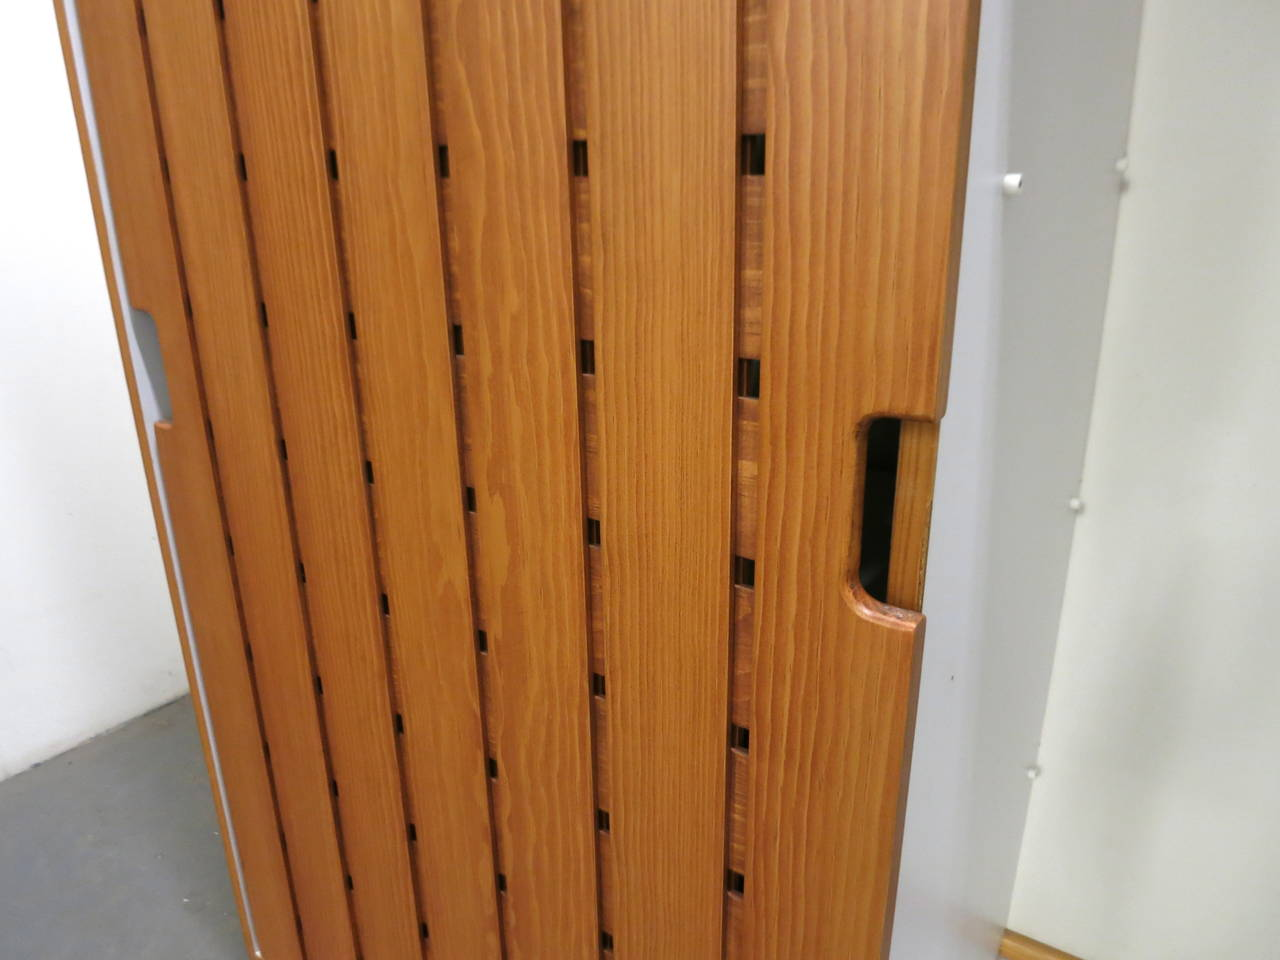 Pair of Wardrobes by Charlotte Perriand, in 1967 for Les Arc Ski Lodge, France For Sale 2